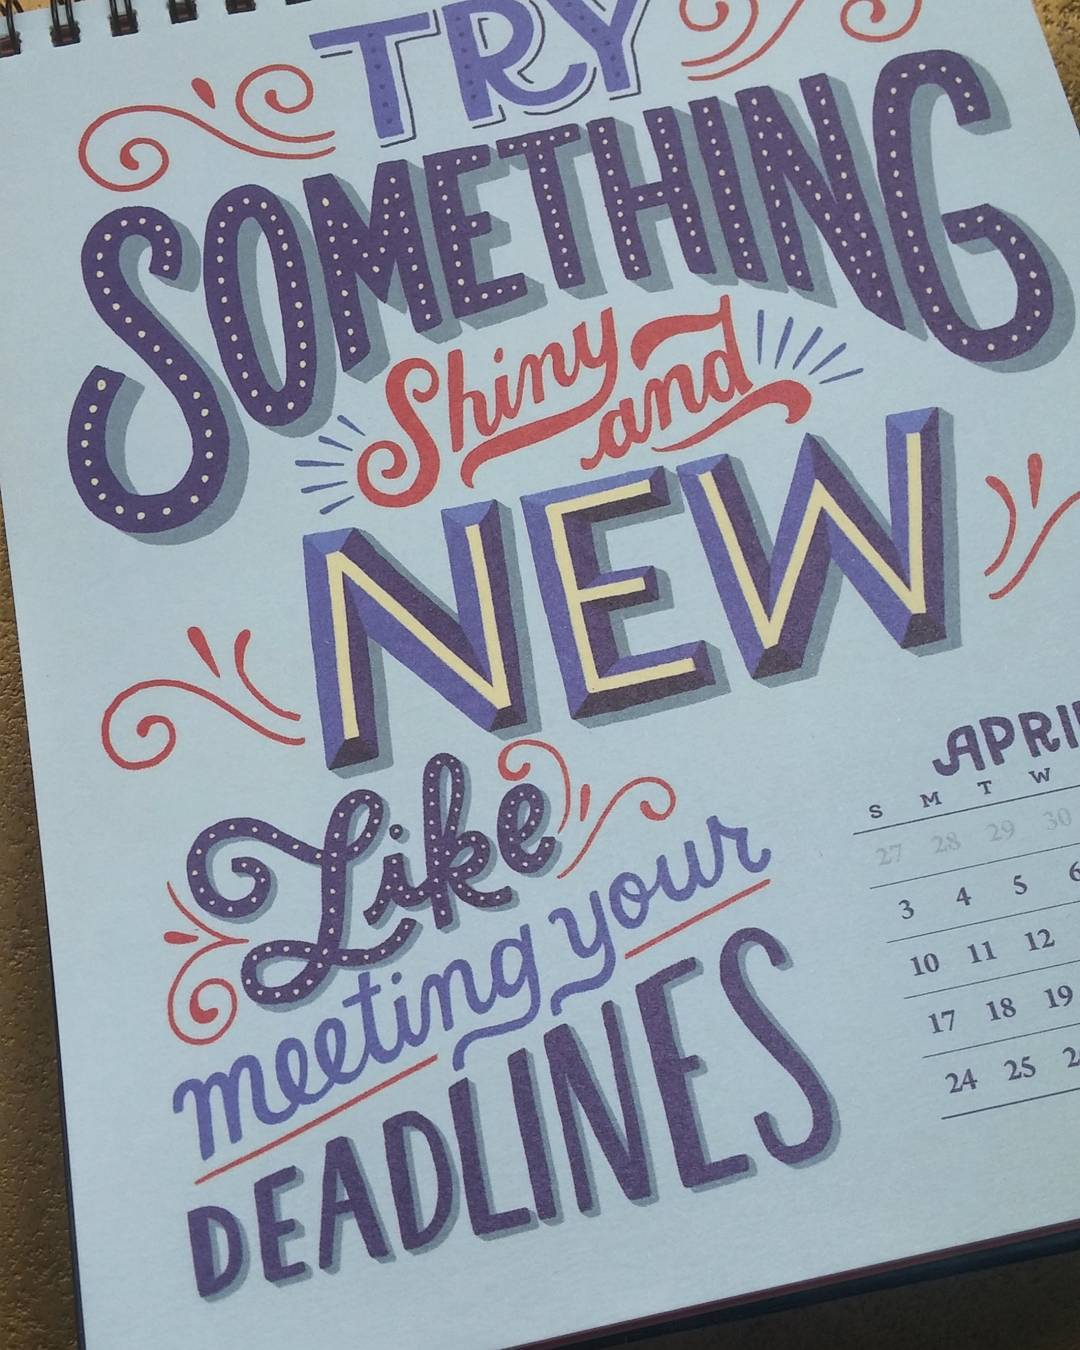 If you say so, #April. #NewMonth #MeetYourDeadlines? #TrySomethingNew